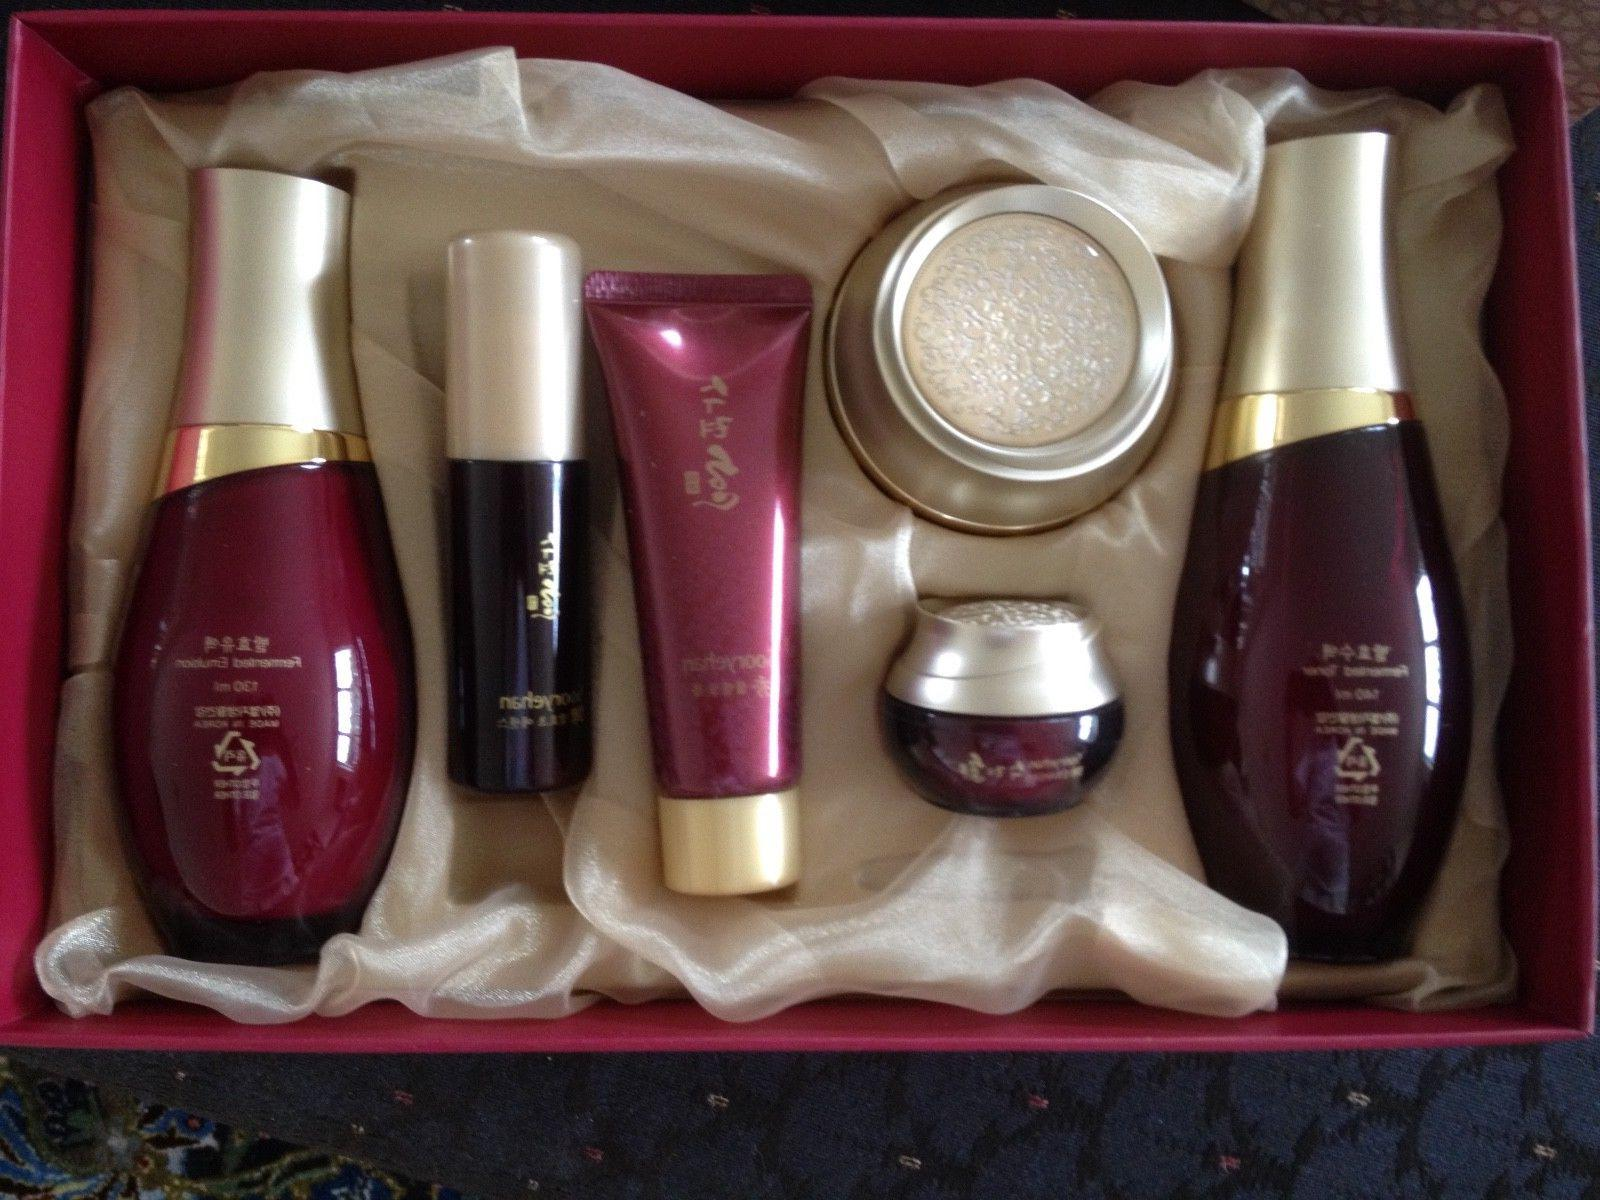 Sooryehan Hyo Korean Red Ginseng Skin Care Set of 6 Gift Box